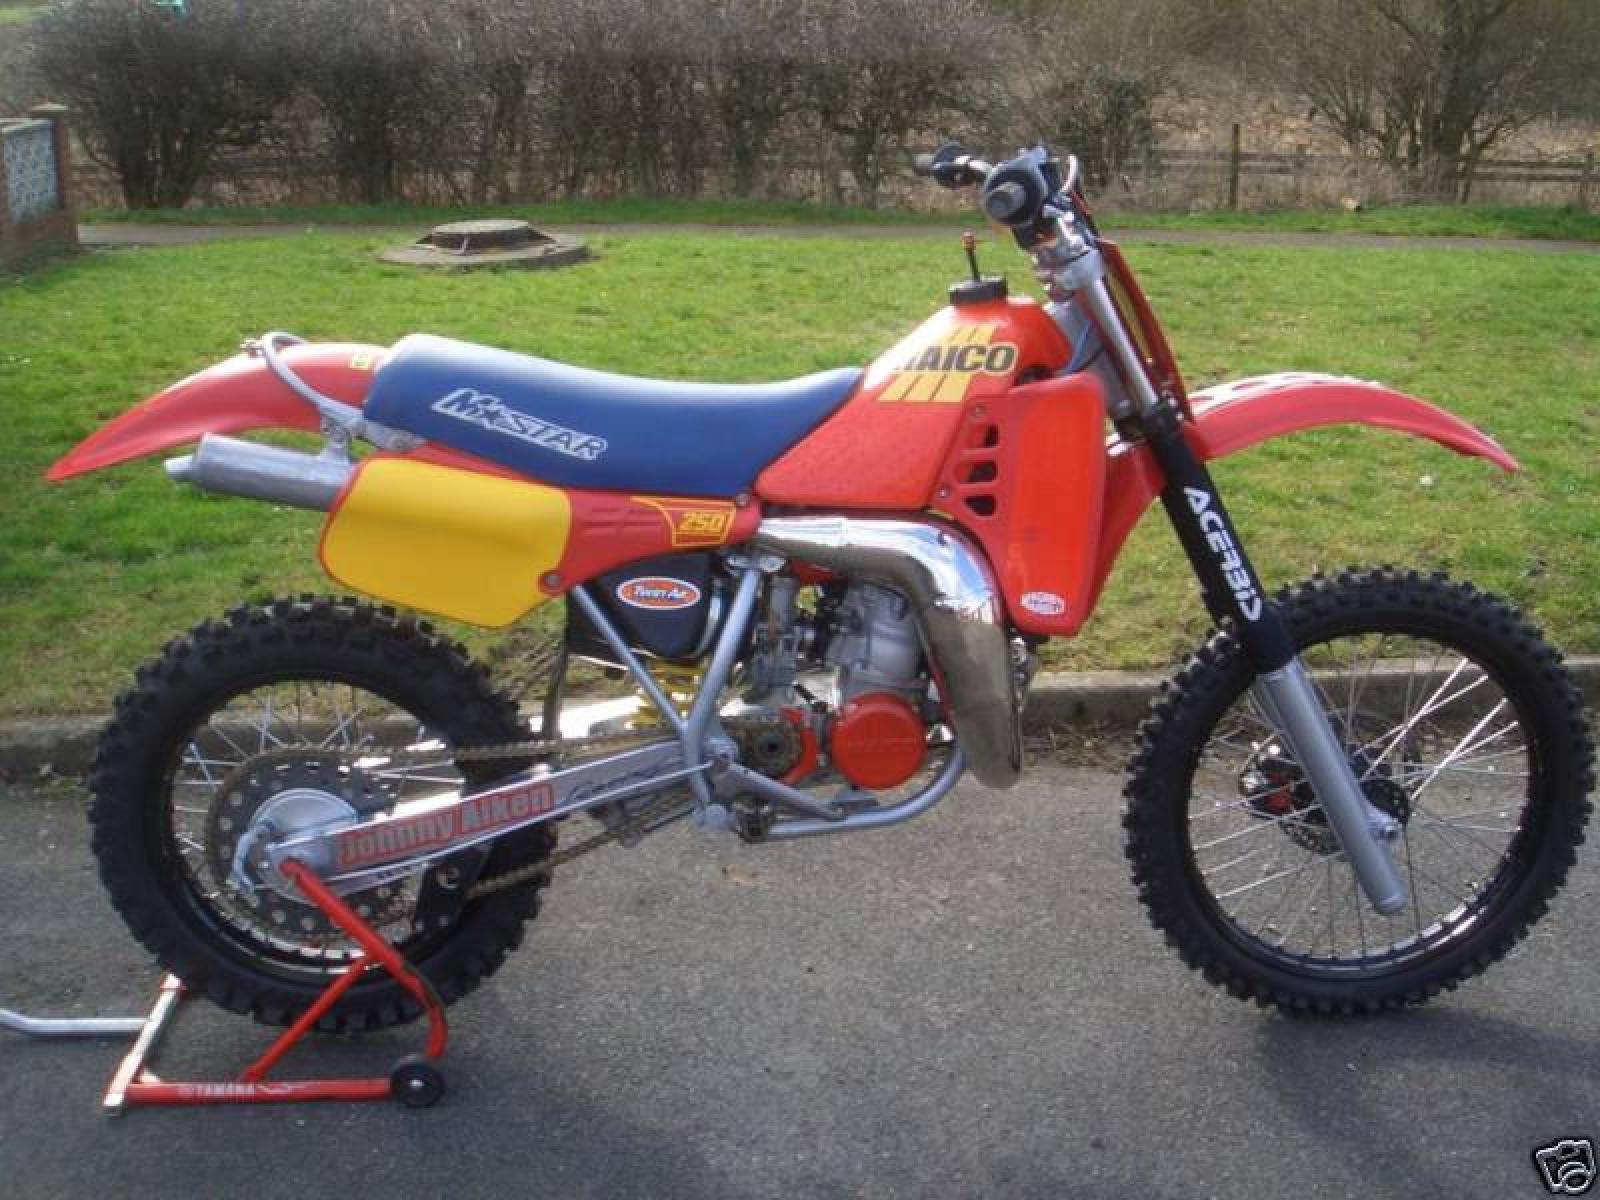 Maico GME 250 1984 images #102384